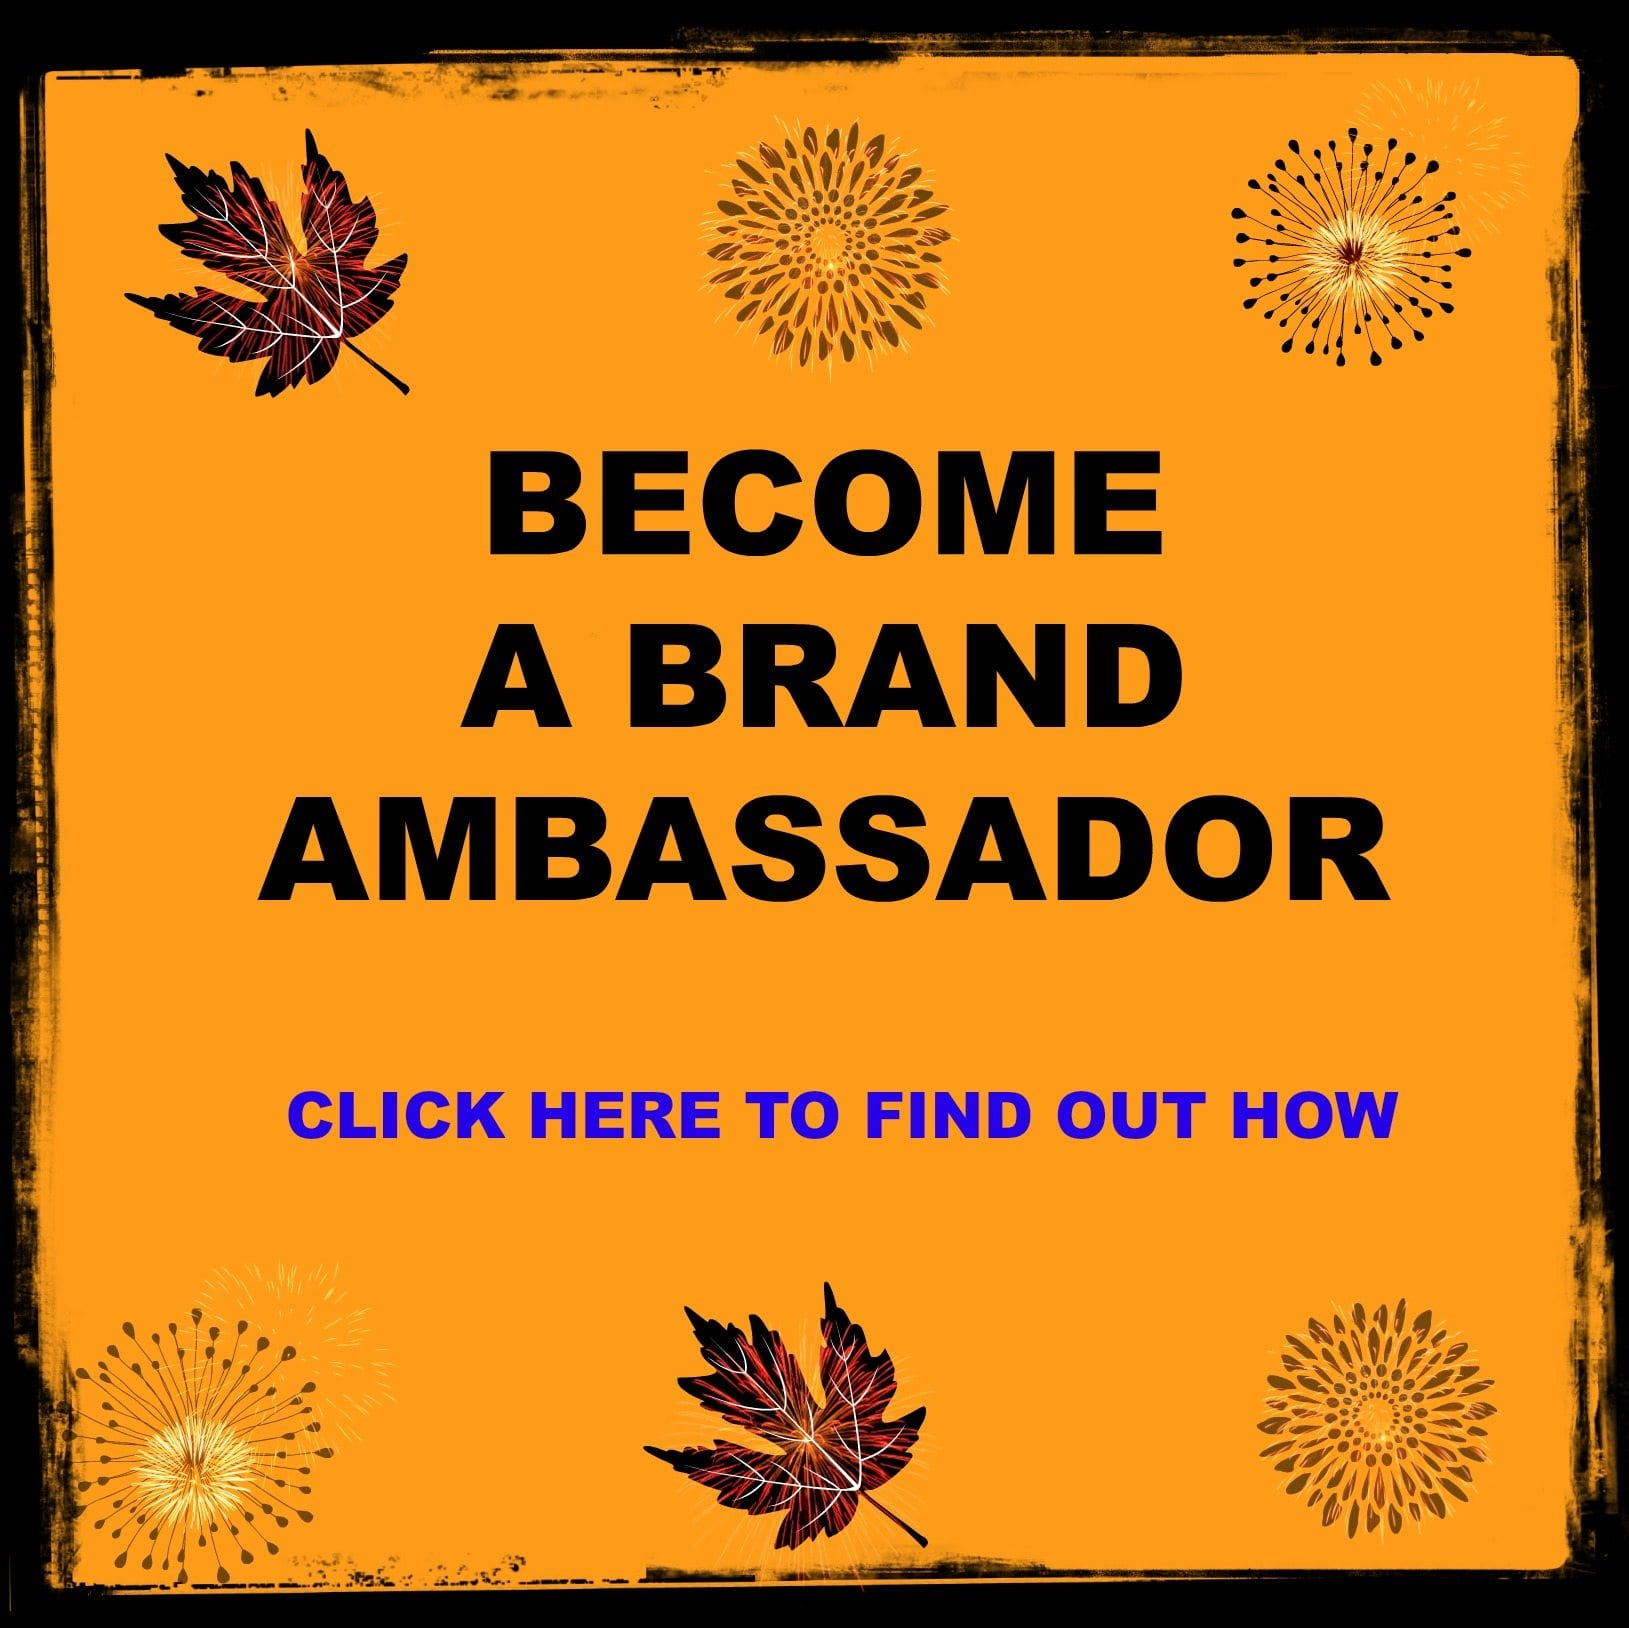 How to become a brand ambassador for The Spice People.